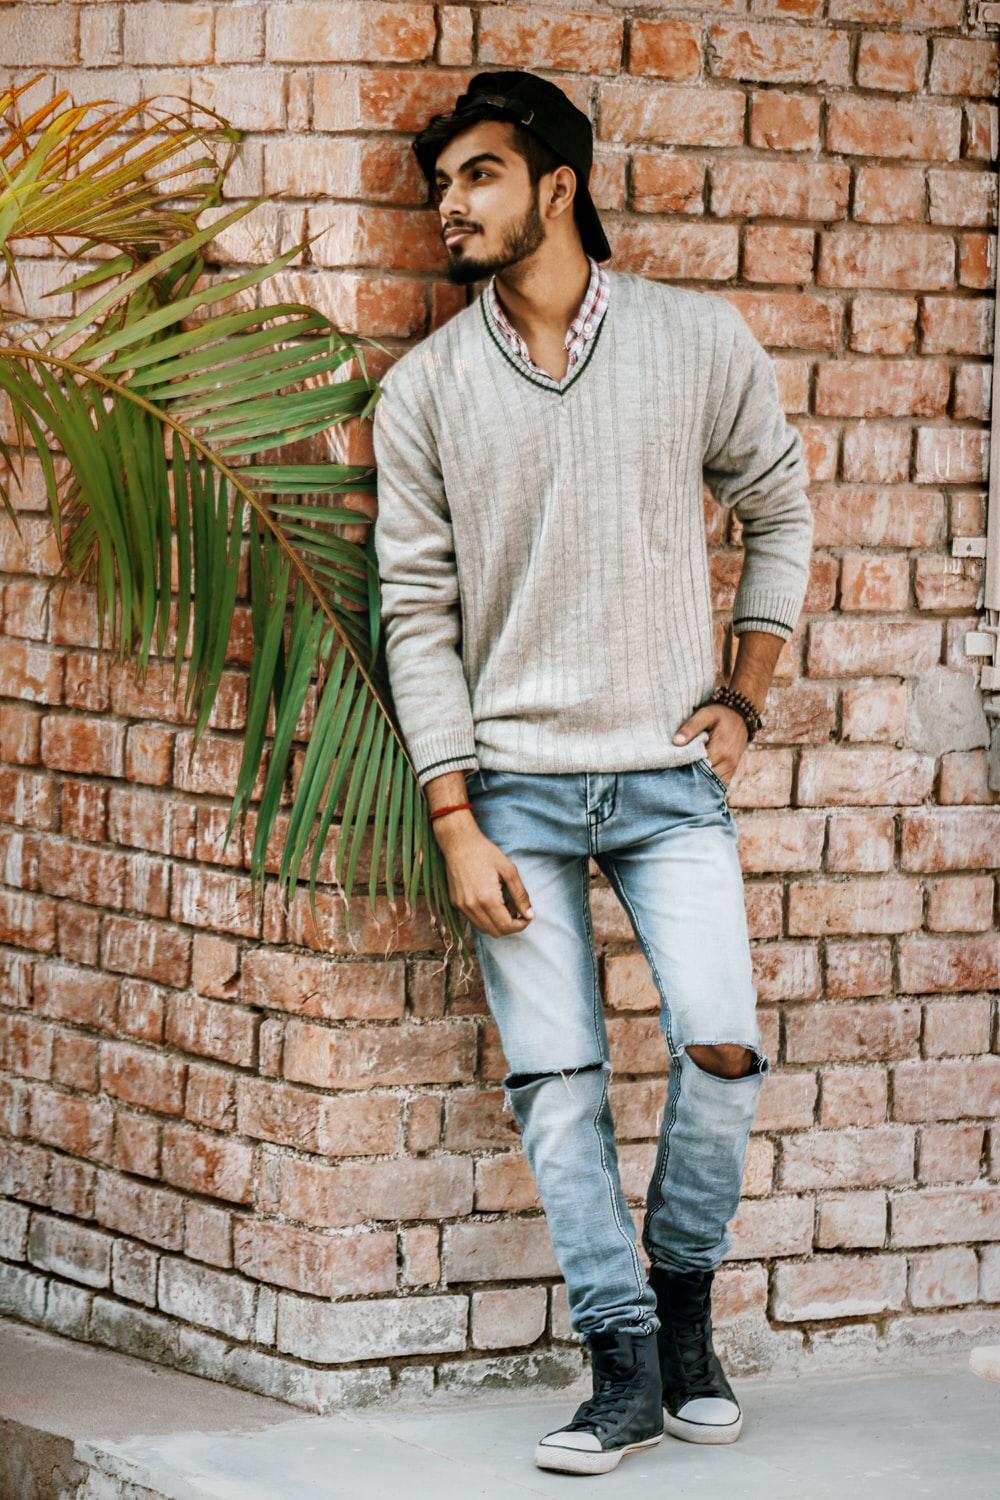 man leaning against on brick wall